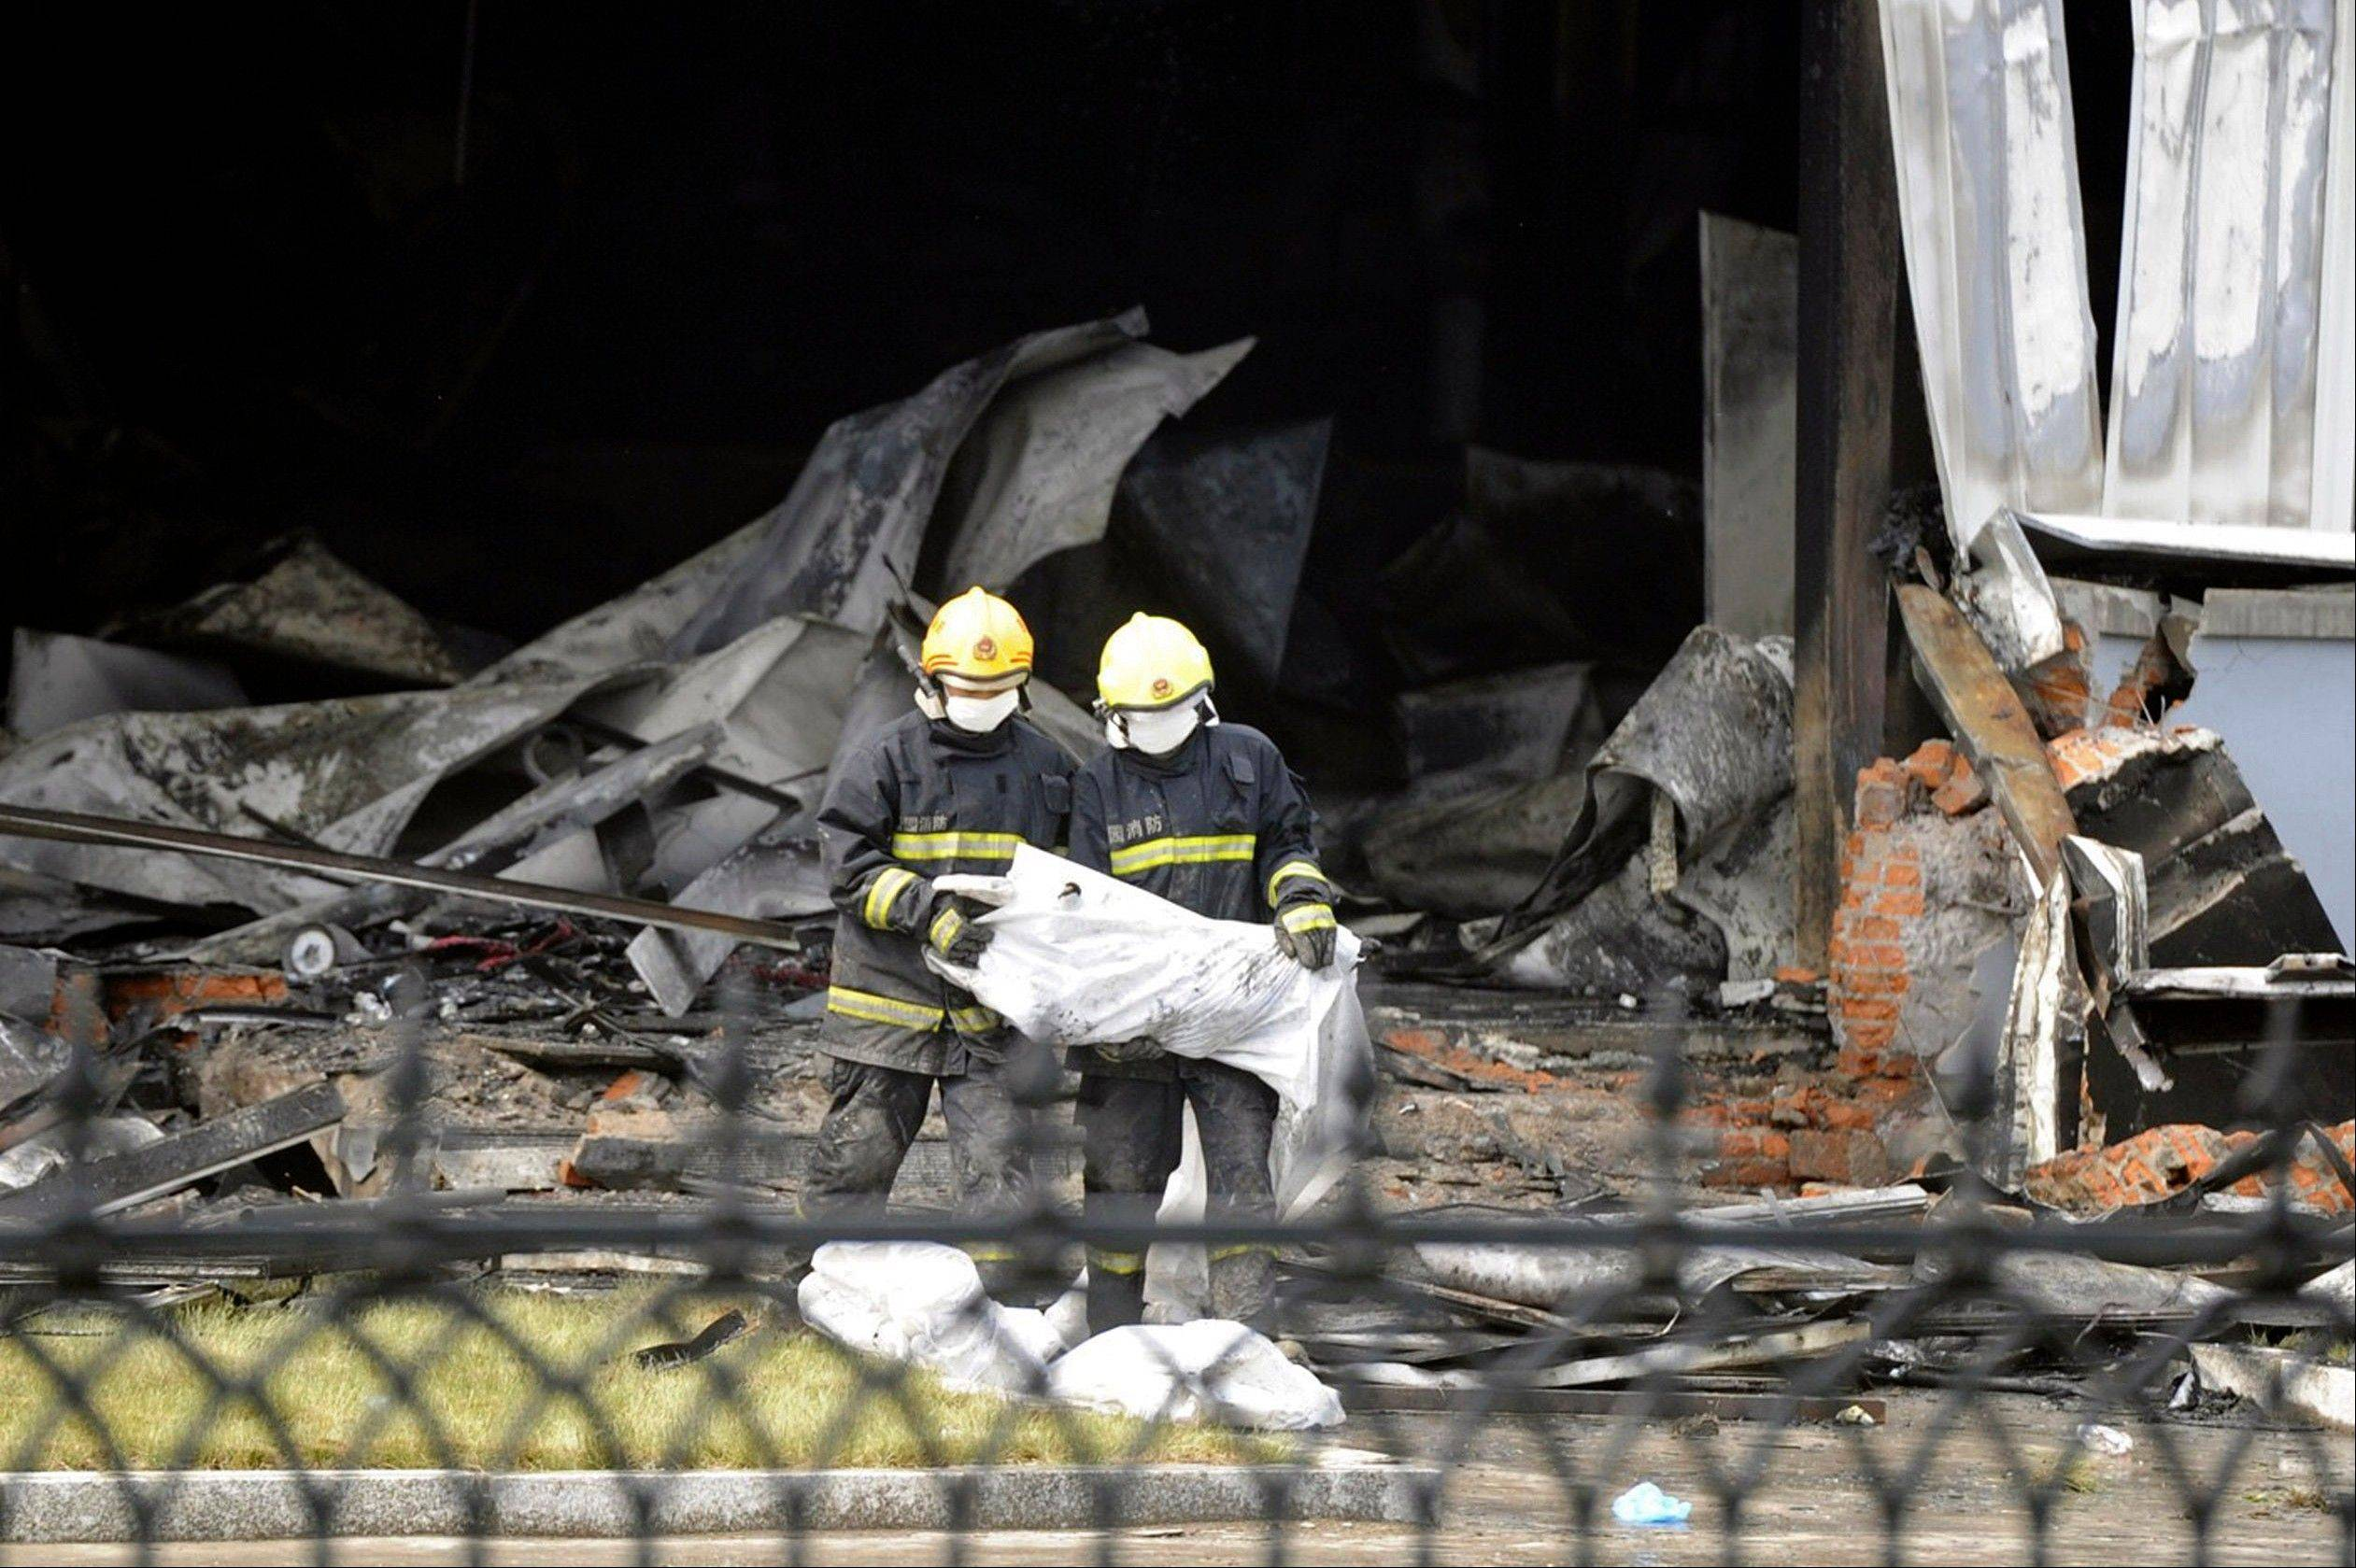 Firefighters prepare bags Monday that appear to contain the remains of victims from a poultry processing plant that was engulfed by a fire in northeast China's Jilin province's Mishazi township. The massive fire broke out here early Monday, trapping workers inside a cluttered slaughterhouse and killing over a hundred people, reports and officials said.